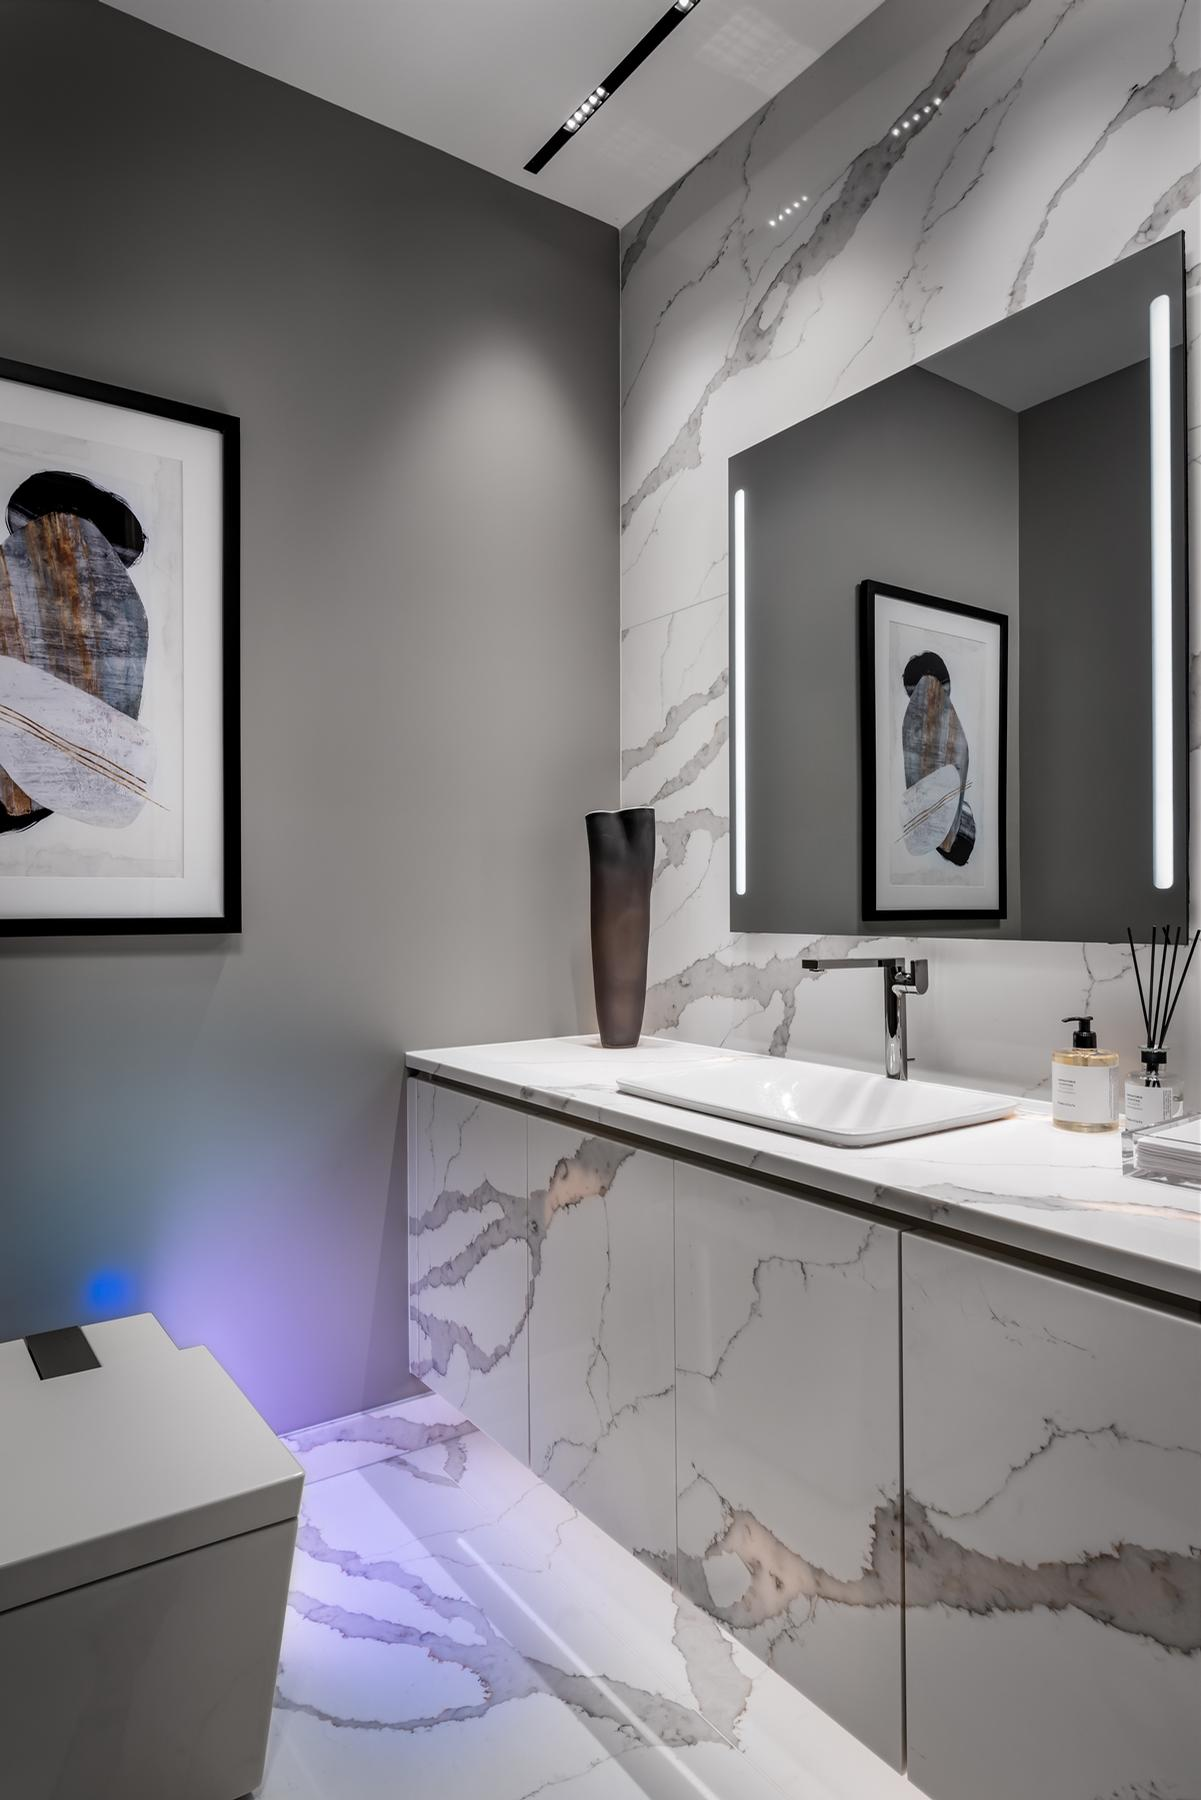 In the bathroom, there's a smart toilet with built-in speakers for playing music